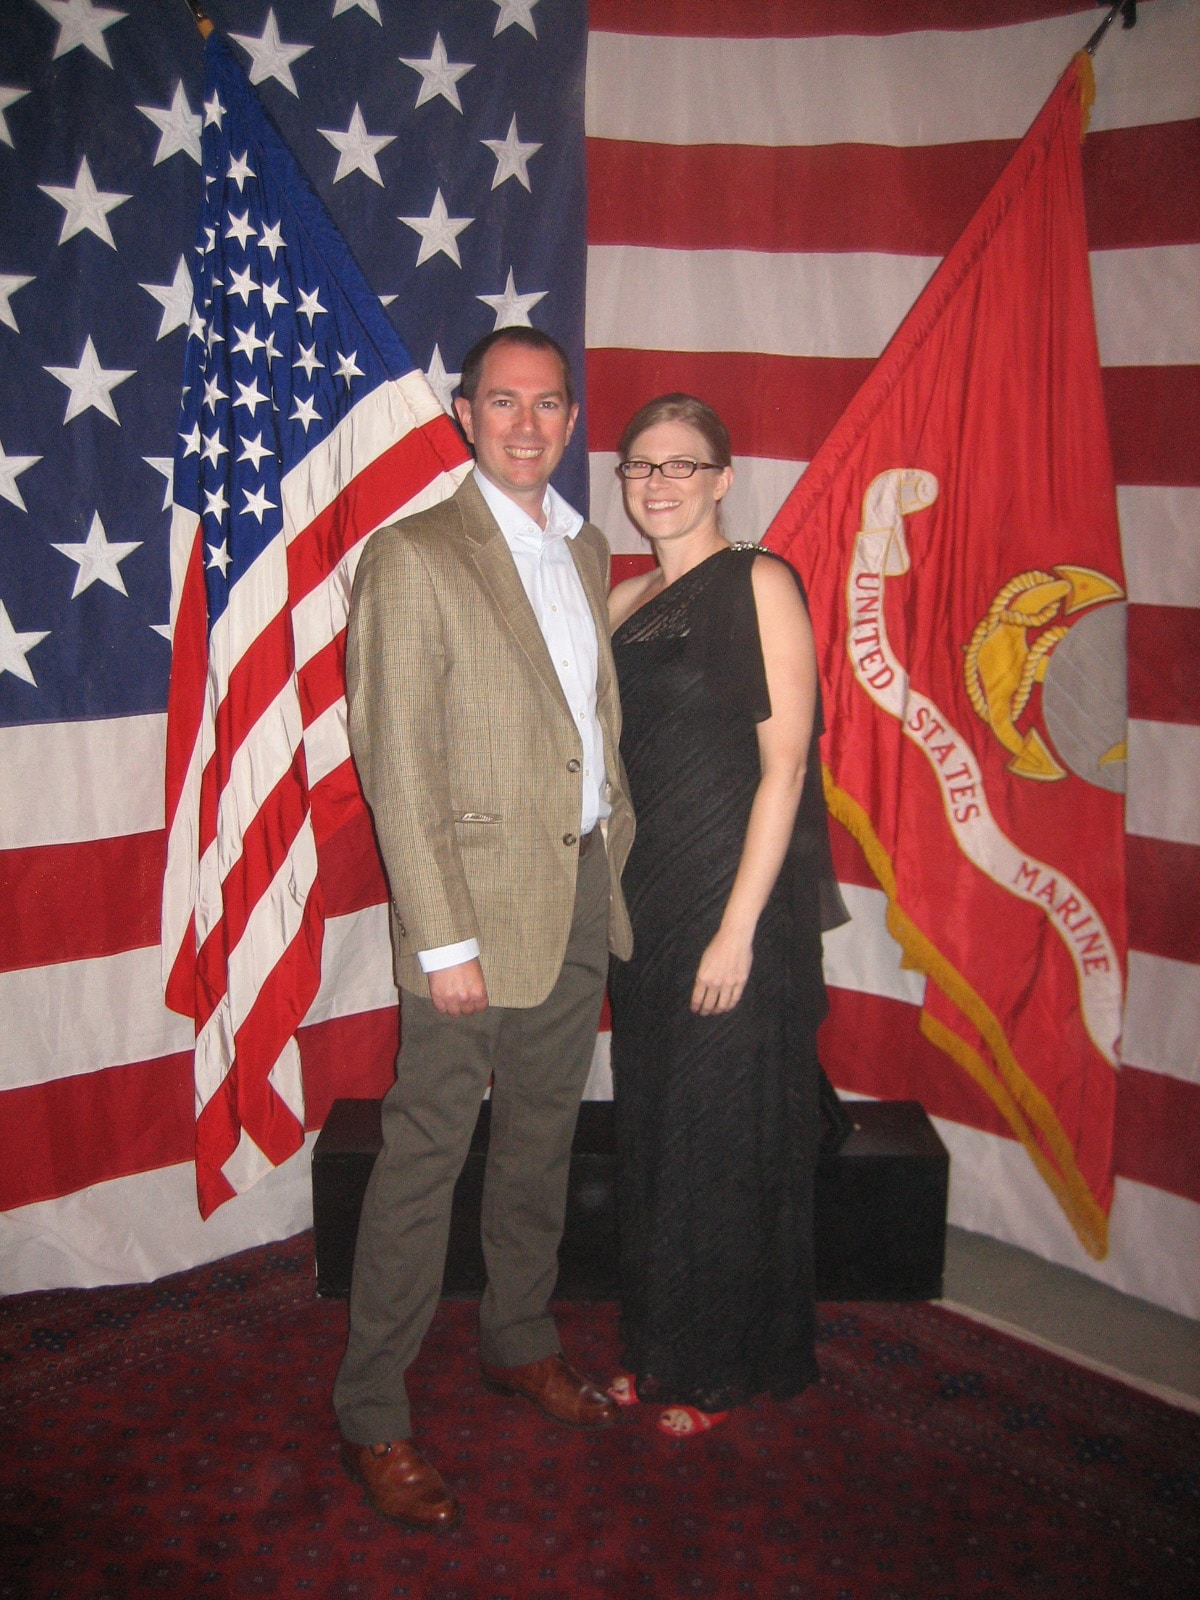 Me and my wife Jennifer at the recent Marine Ball in Kabul.